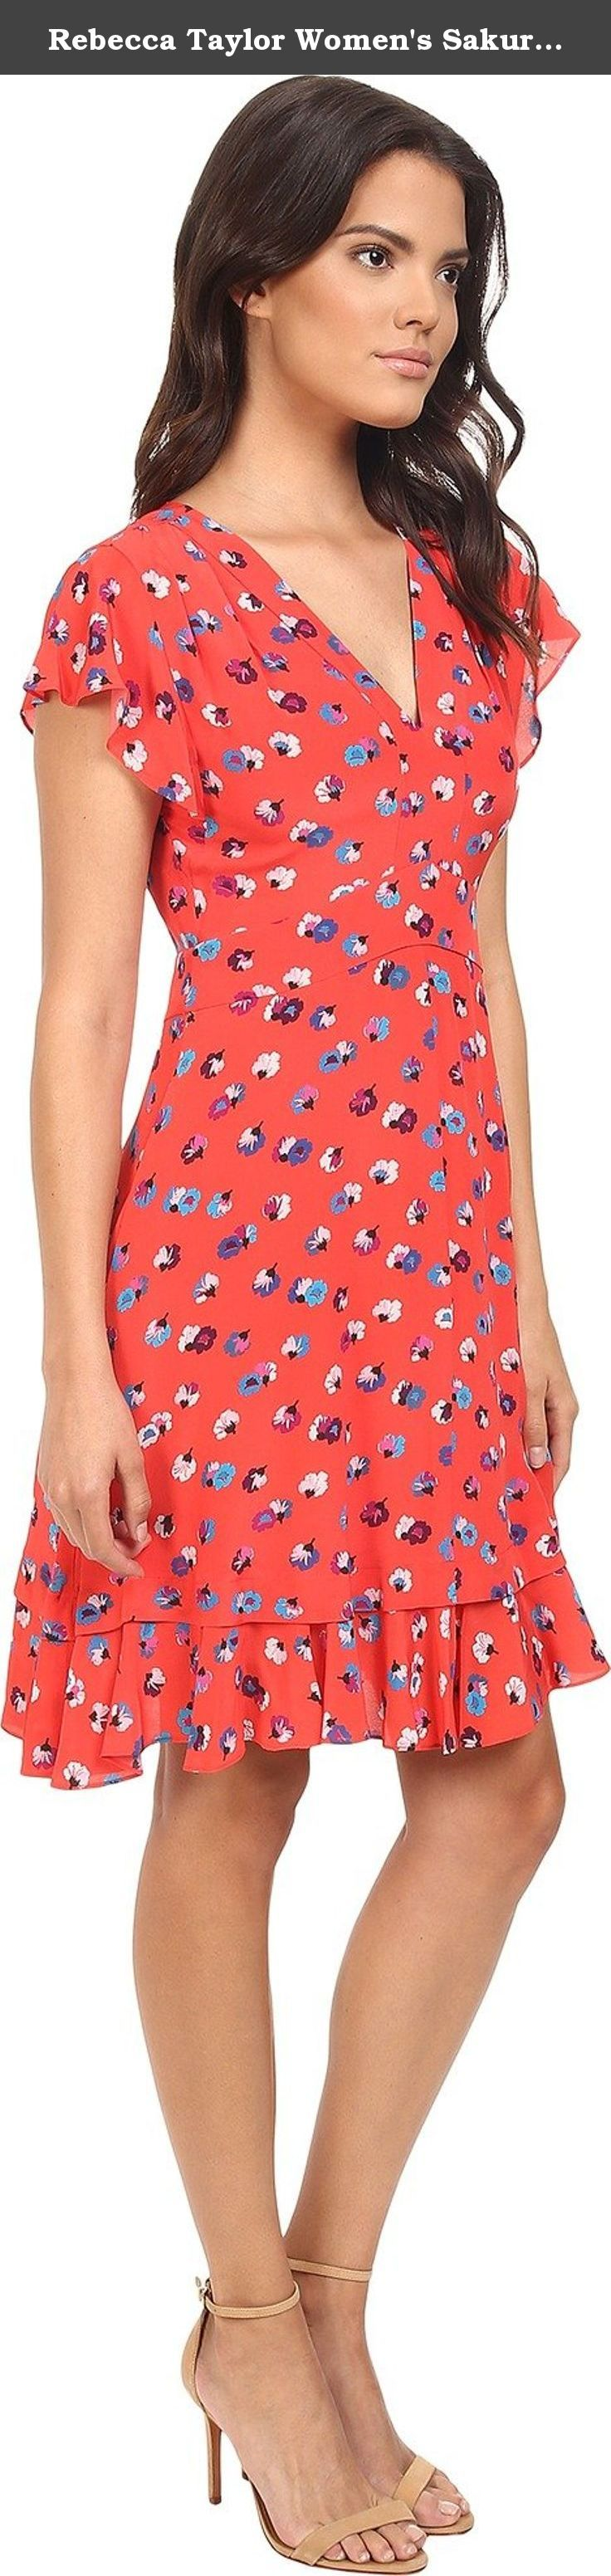 Rebecca Taylor Women's Sakura Floral Sleeveless V-Neck Dress Poppy Dress. Rebecca Taylor Size Chart Flared dress boasts fun summertime florals for effortlessly chic style. Luxe silk fabrication. V-neckline. Short flutter sleeve design. Concealed back zip closure. Banded waist creates a flattering empire silhouette. Straight hemline. Fully lined. 100% silk;Lining: 100% polyester. Dry clean only. Imported. Measurements: Length: 38 in Product measurements were taken using size 2. Please note...